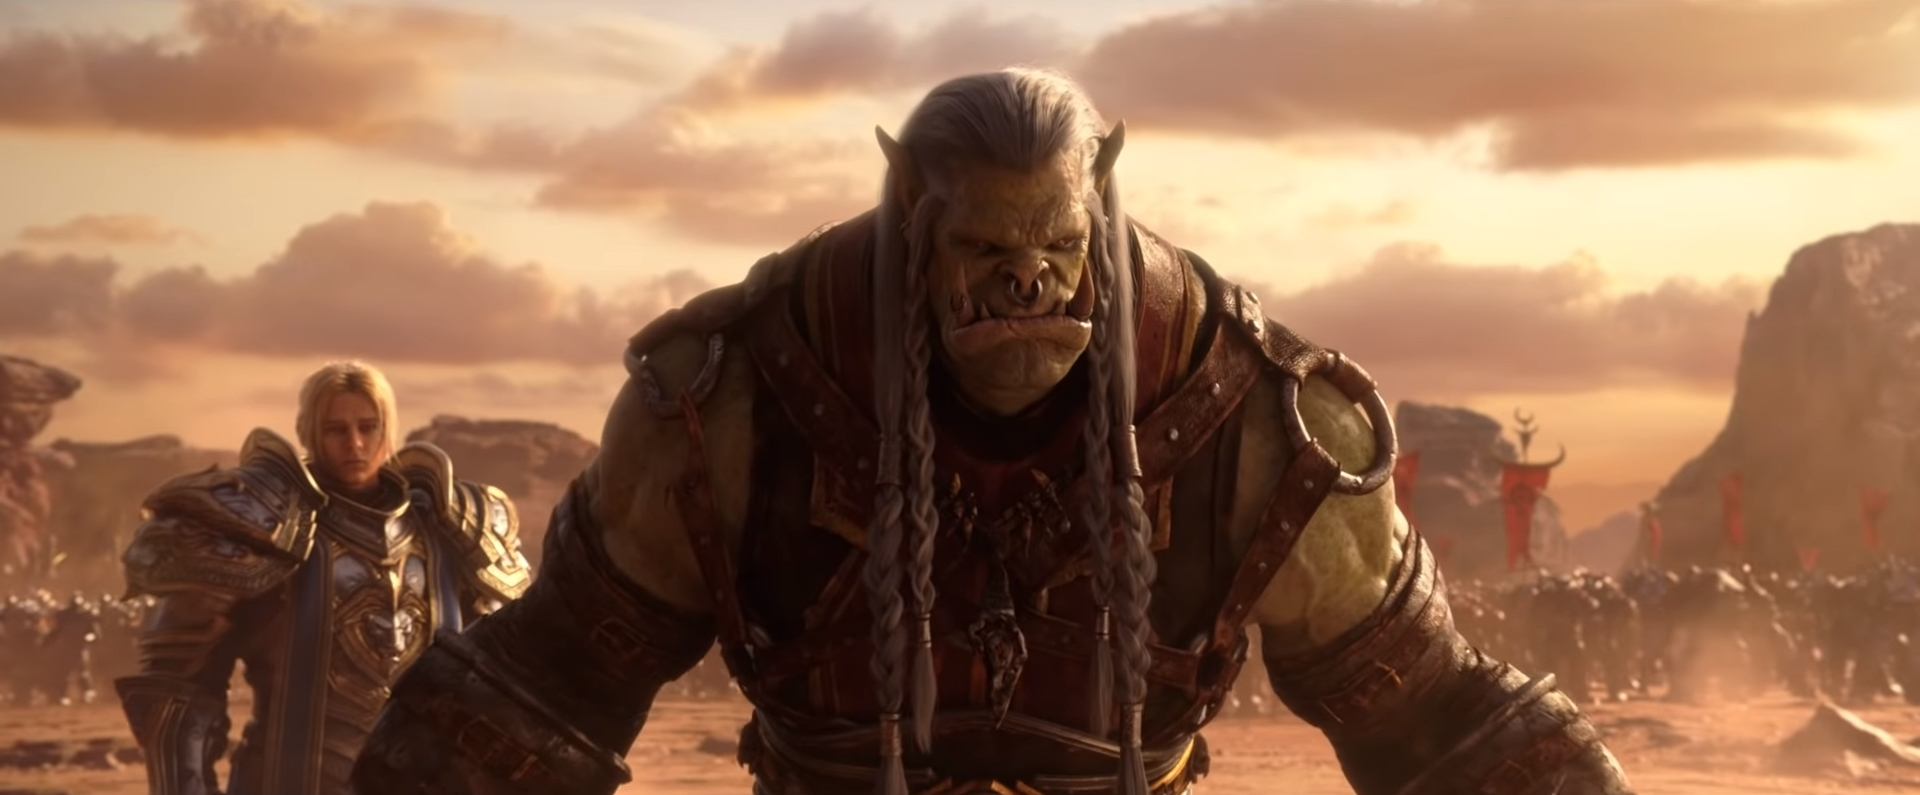 Ending Of Battle For Azeroth Leaves World of Warcraft's Future In Question